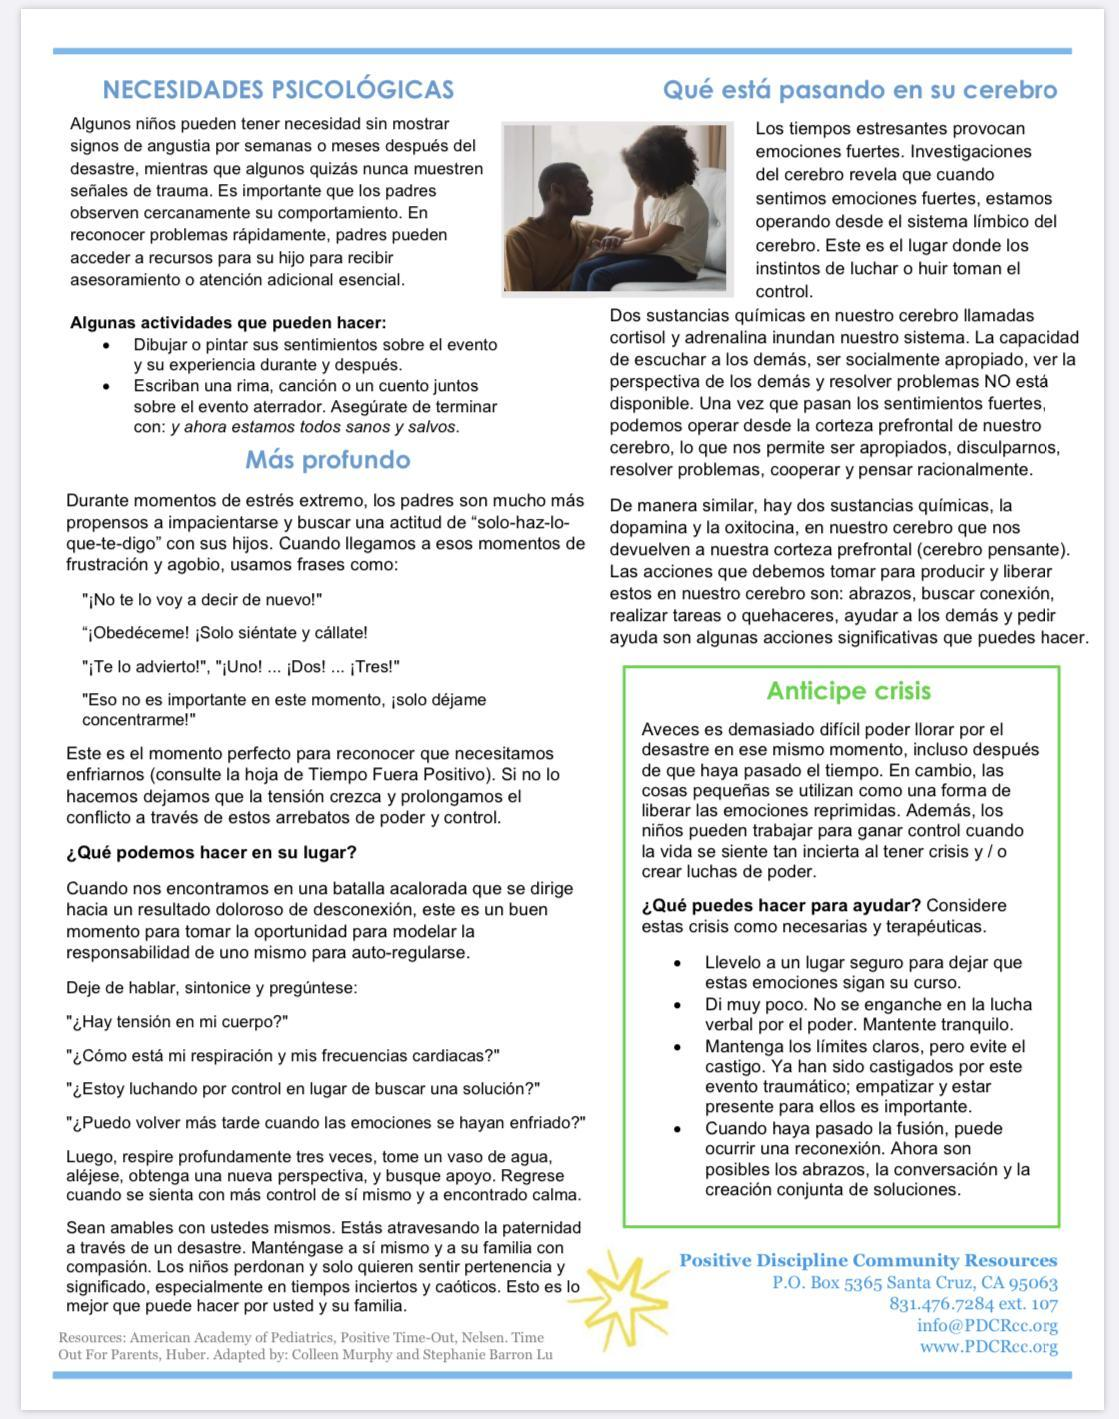 Navigating Disasters page 2 (Spanish)